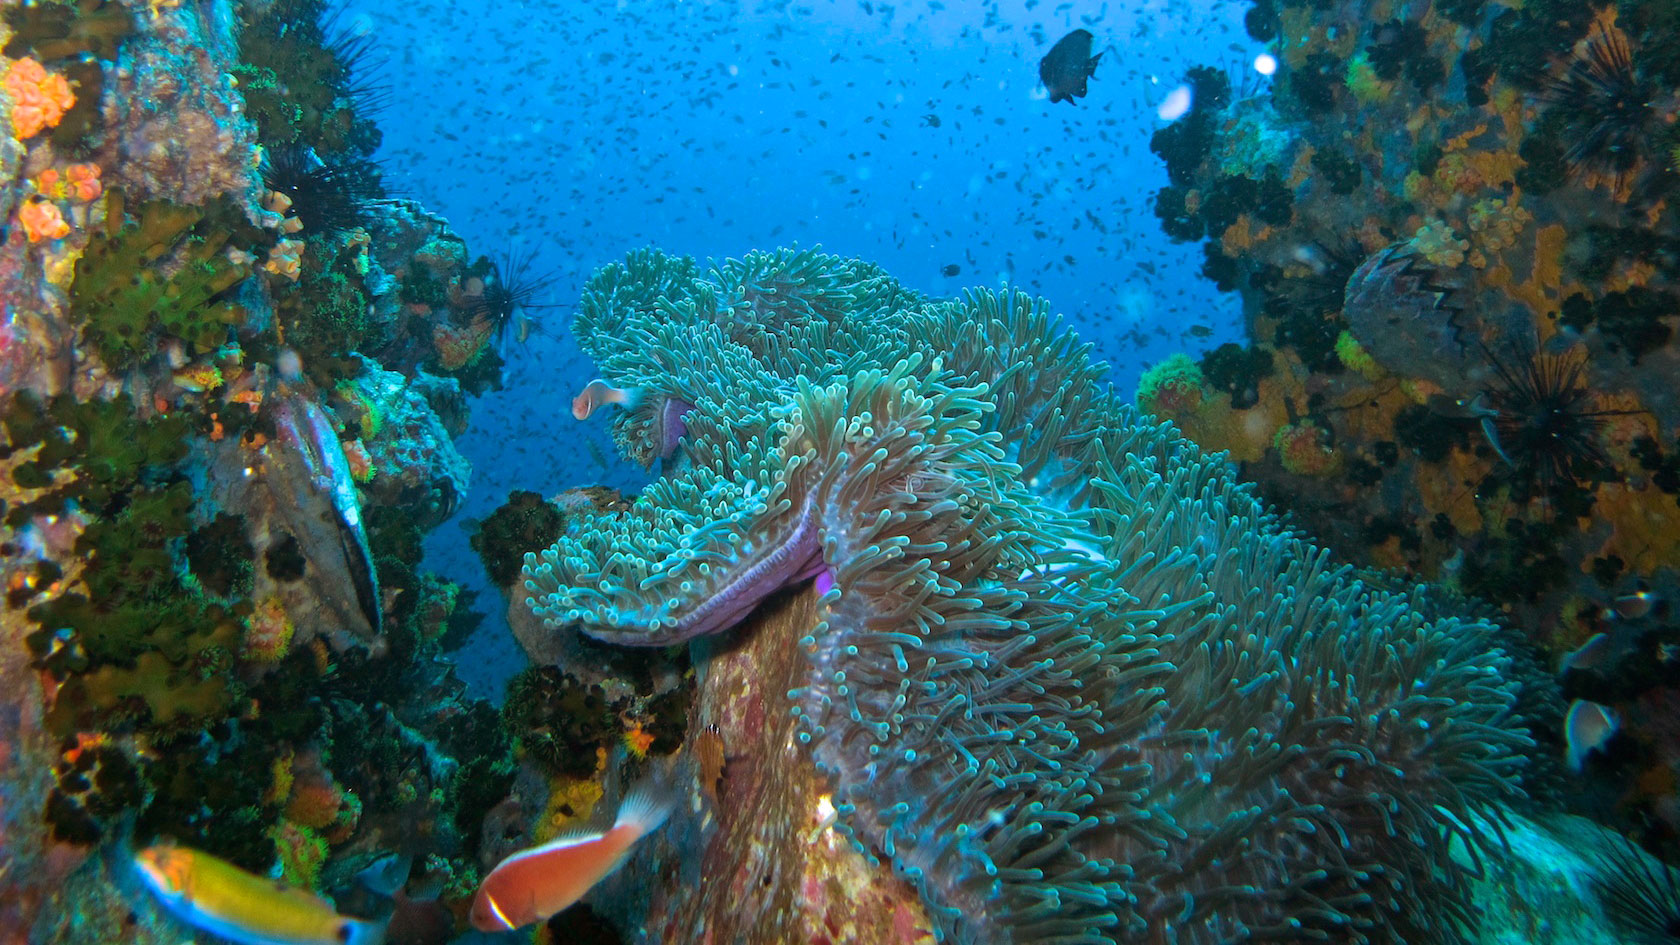 Koh tao dive sites koh tao a complete guide - Dive in koh tao ...